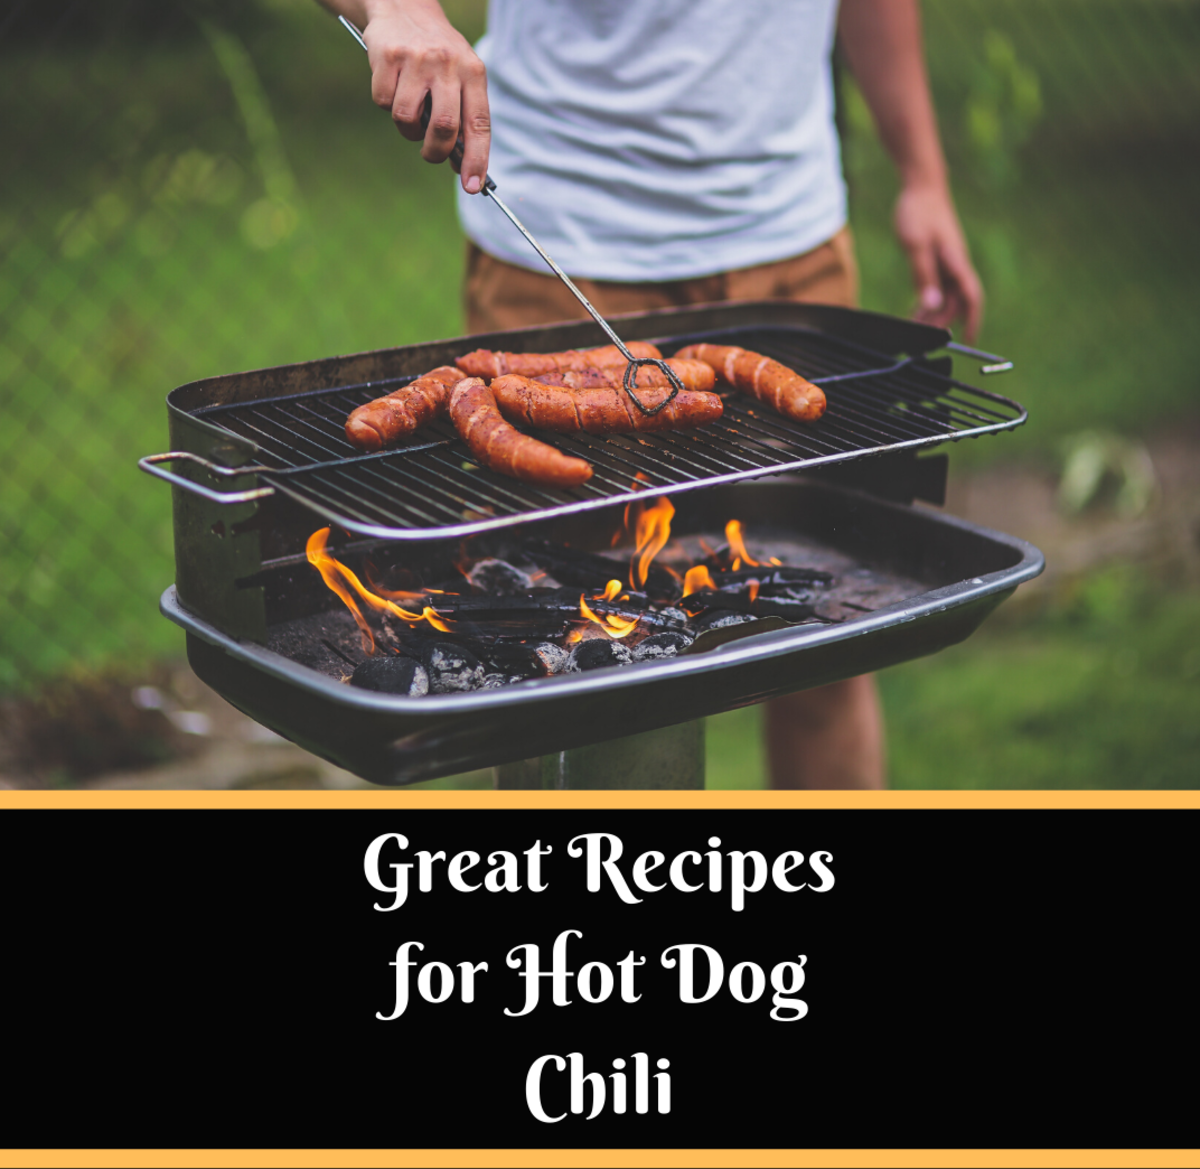 These hot dog chili recipes are great for the whole family.